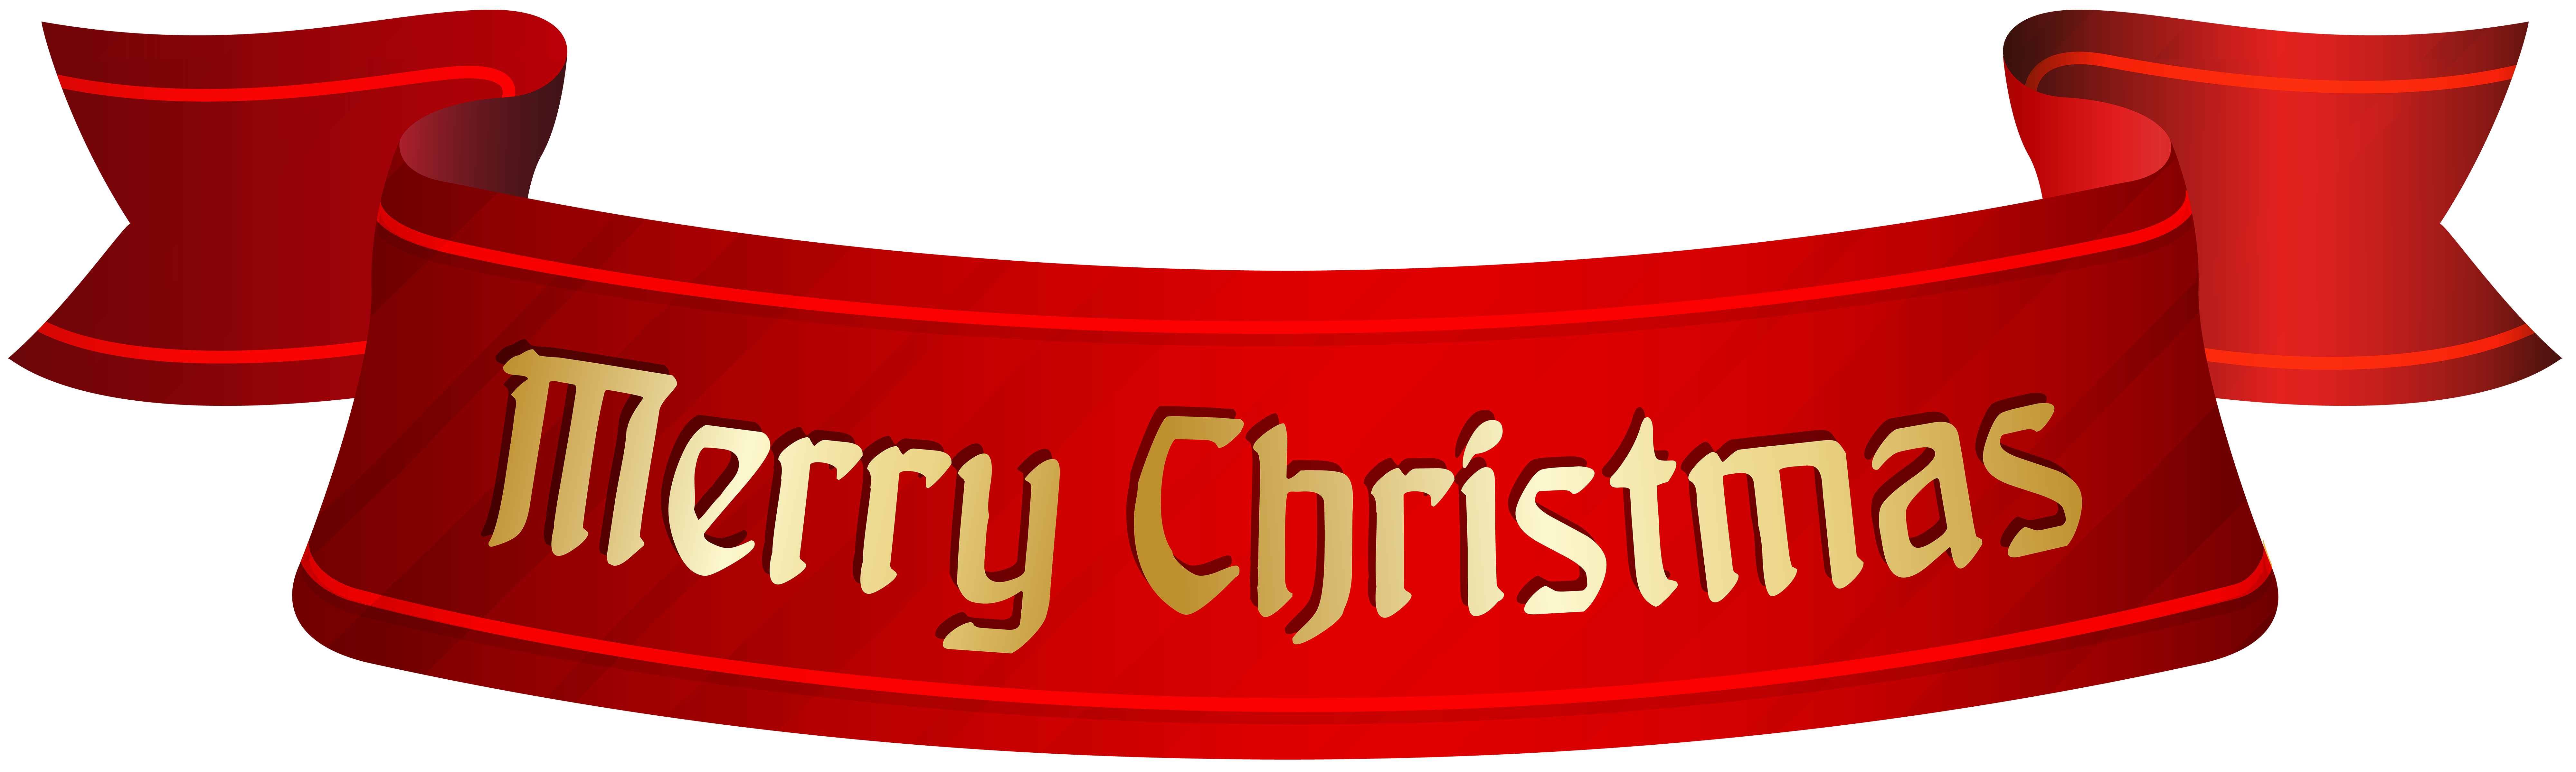 8000x2399 Merry Christmas Banner Png Clip Artu200b Gallery Yopriceville